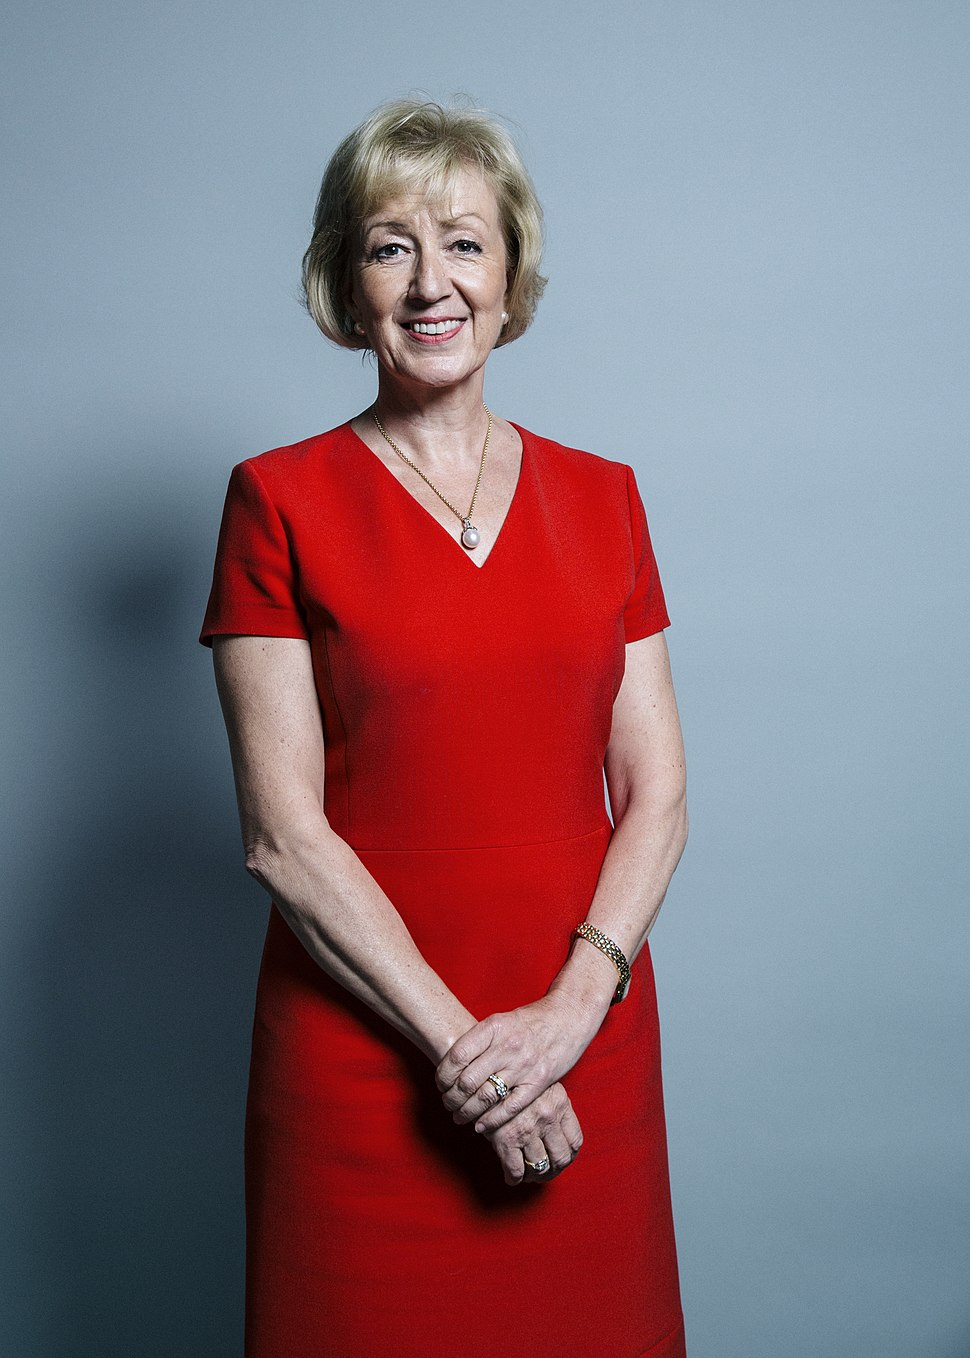 Official portrait of Andrea Leadsom